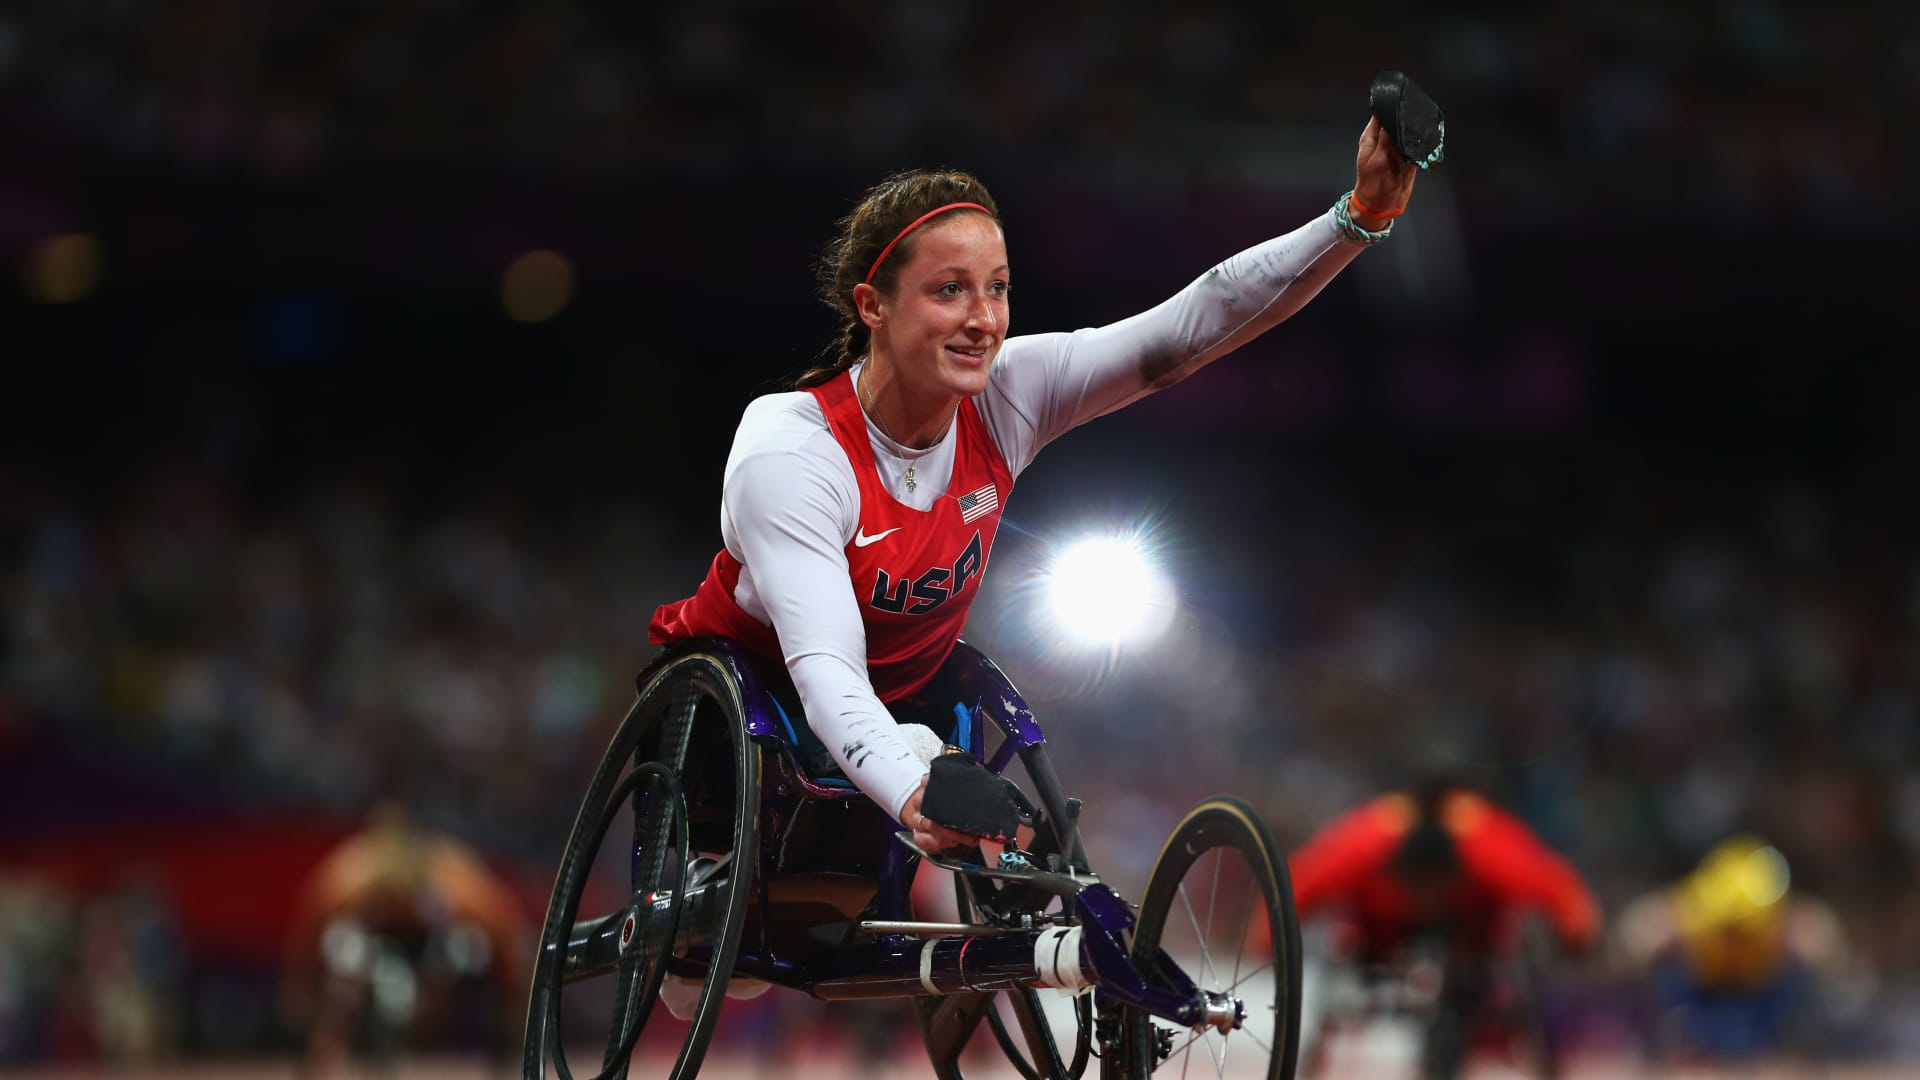 Tatyana Mcfadden of the United States wins gold in the Women's 400m - T54 Final on day 5 of the London 2012 Paralympic Games at Olympic Stadium on September 3, 2012 in London, England. (Photo by Michael Steele/Getty Images)